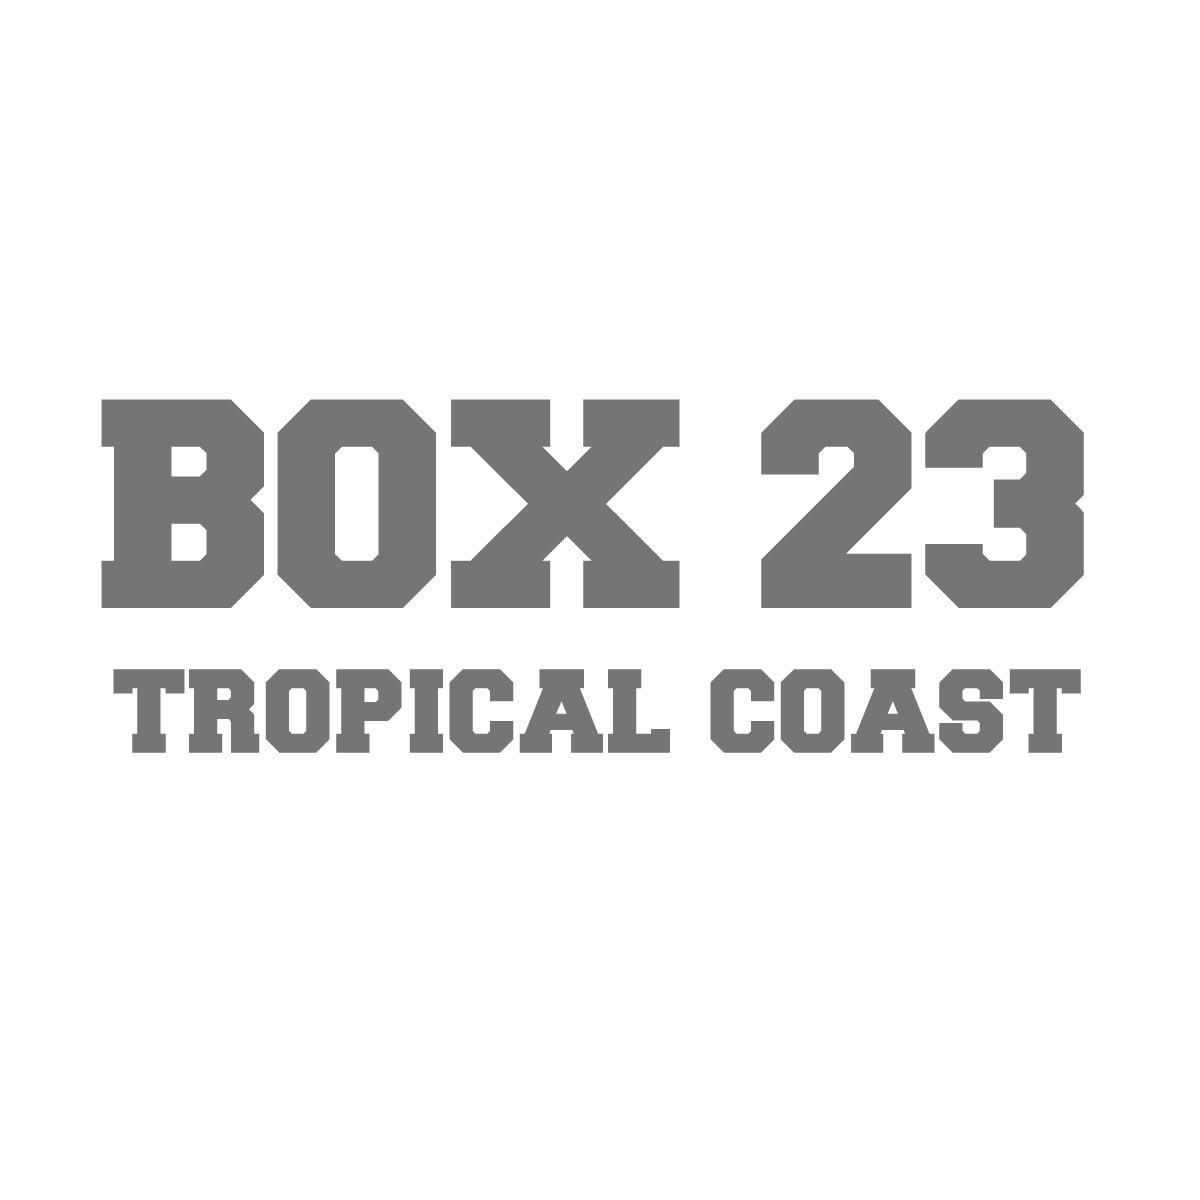 Box23 Tropical Coast